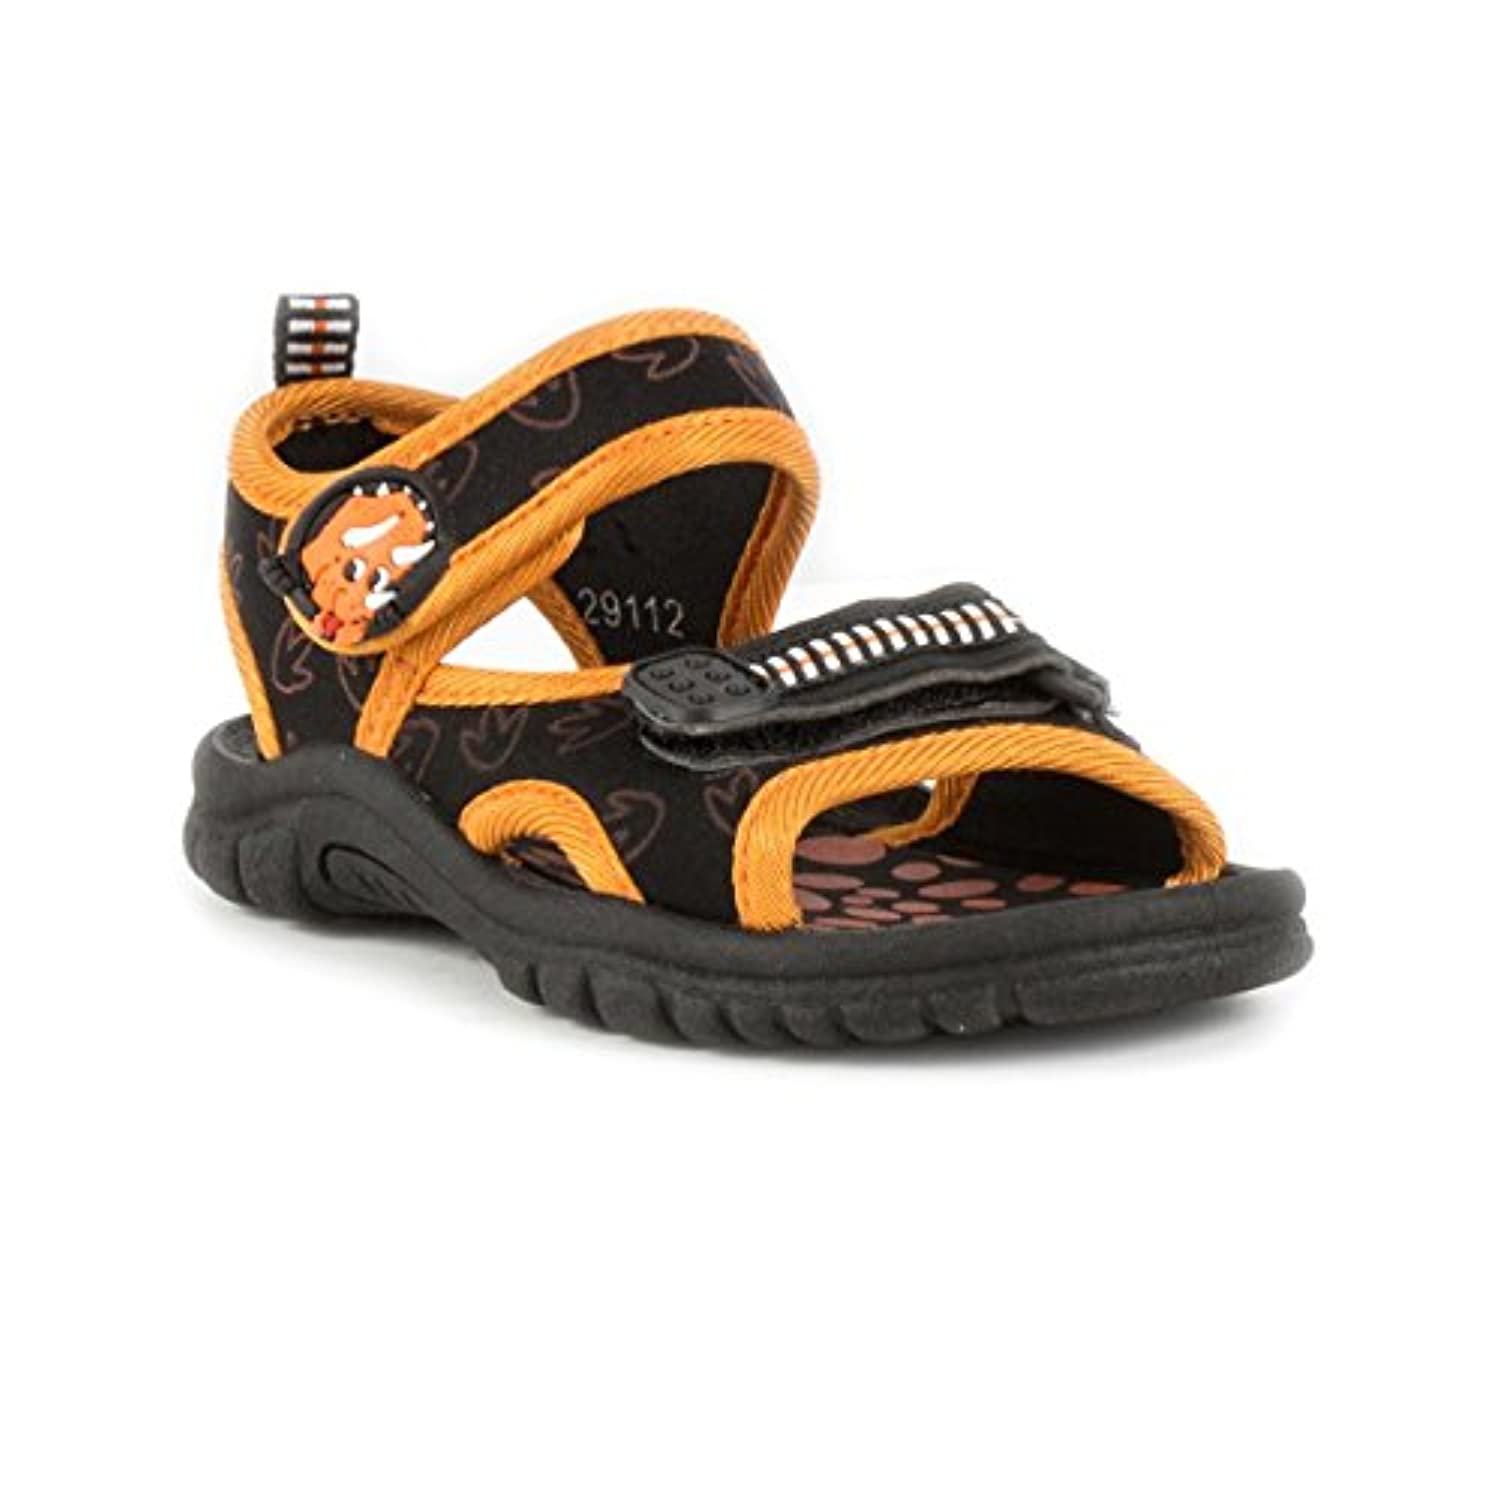 Walkright Boys Black & Orange Dino Sandals - Size 4 - Black